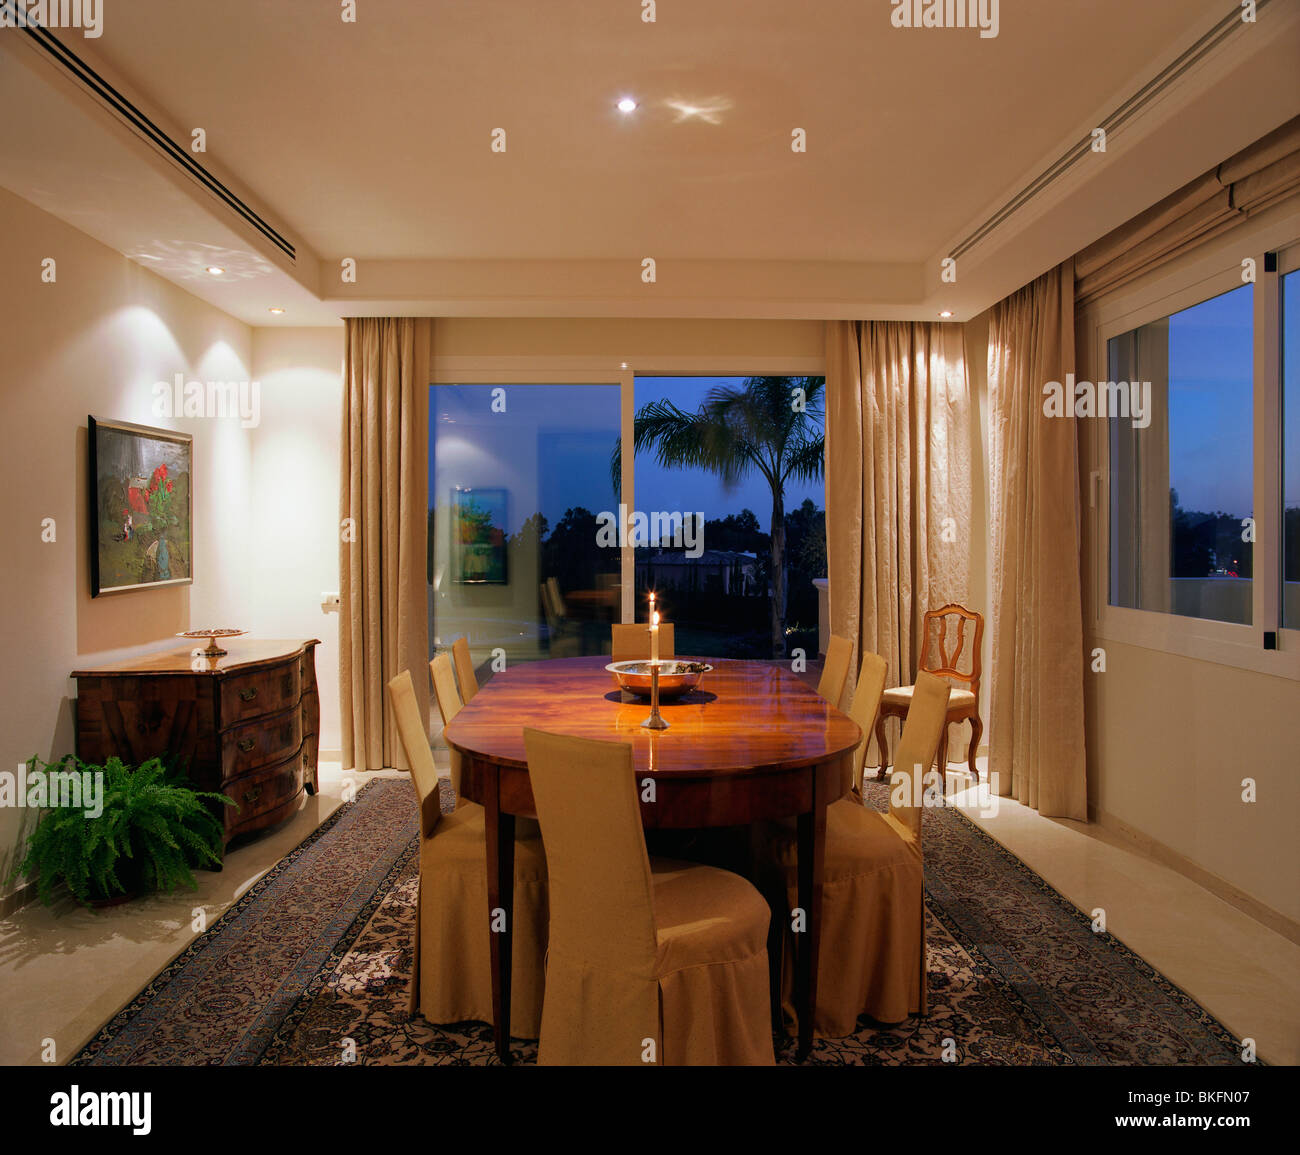 Down lighting in modern spanish dining room at night with patio down lighting in modern spanish dining room at night with patio doors and polished wood eventelaan Images